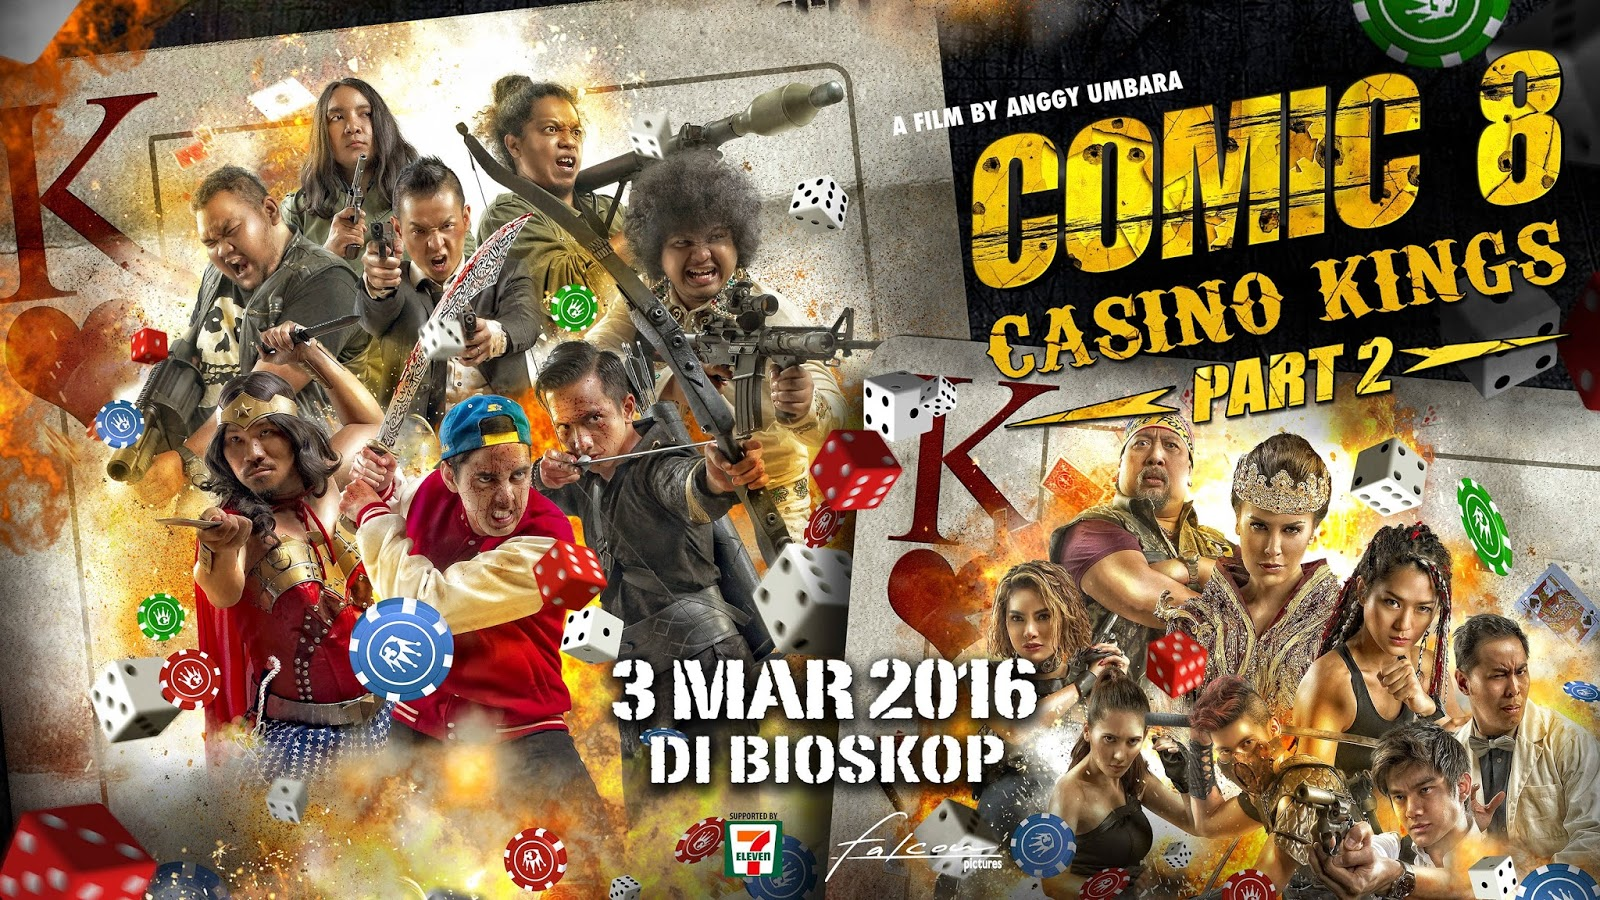 comic 8 casino king part 3